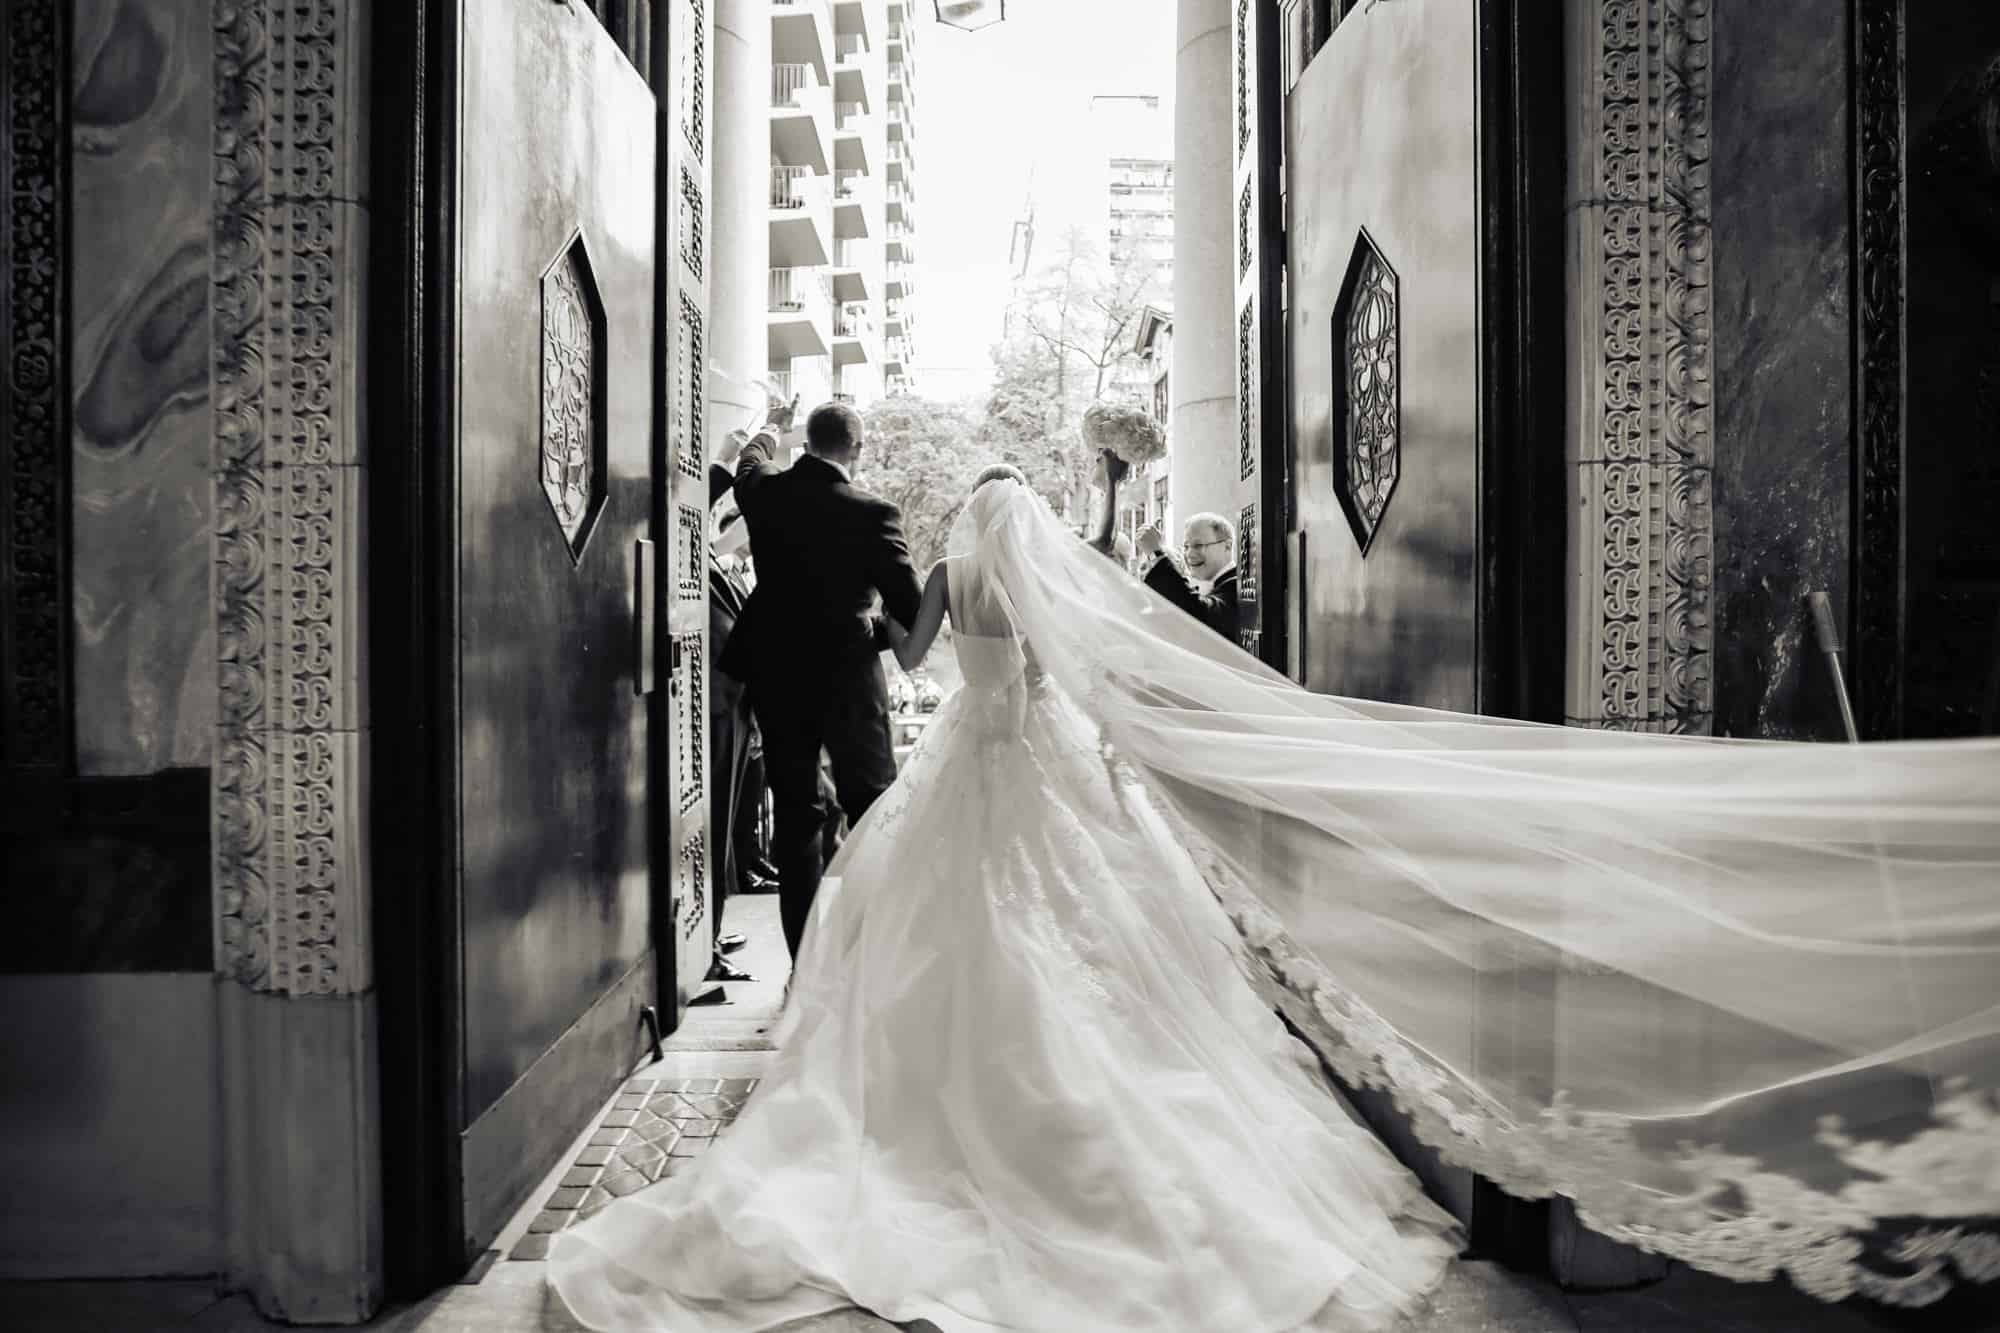 St. Patricks Church|bride and groom exiting church waving to guests shot from behind